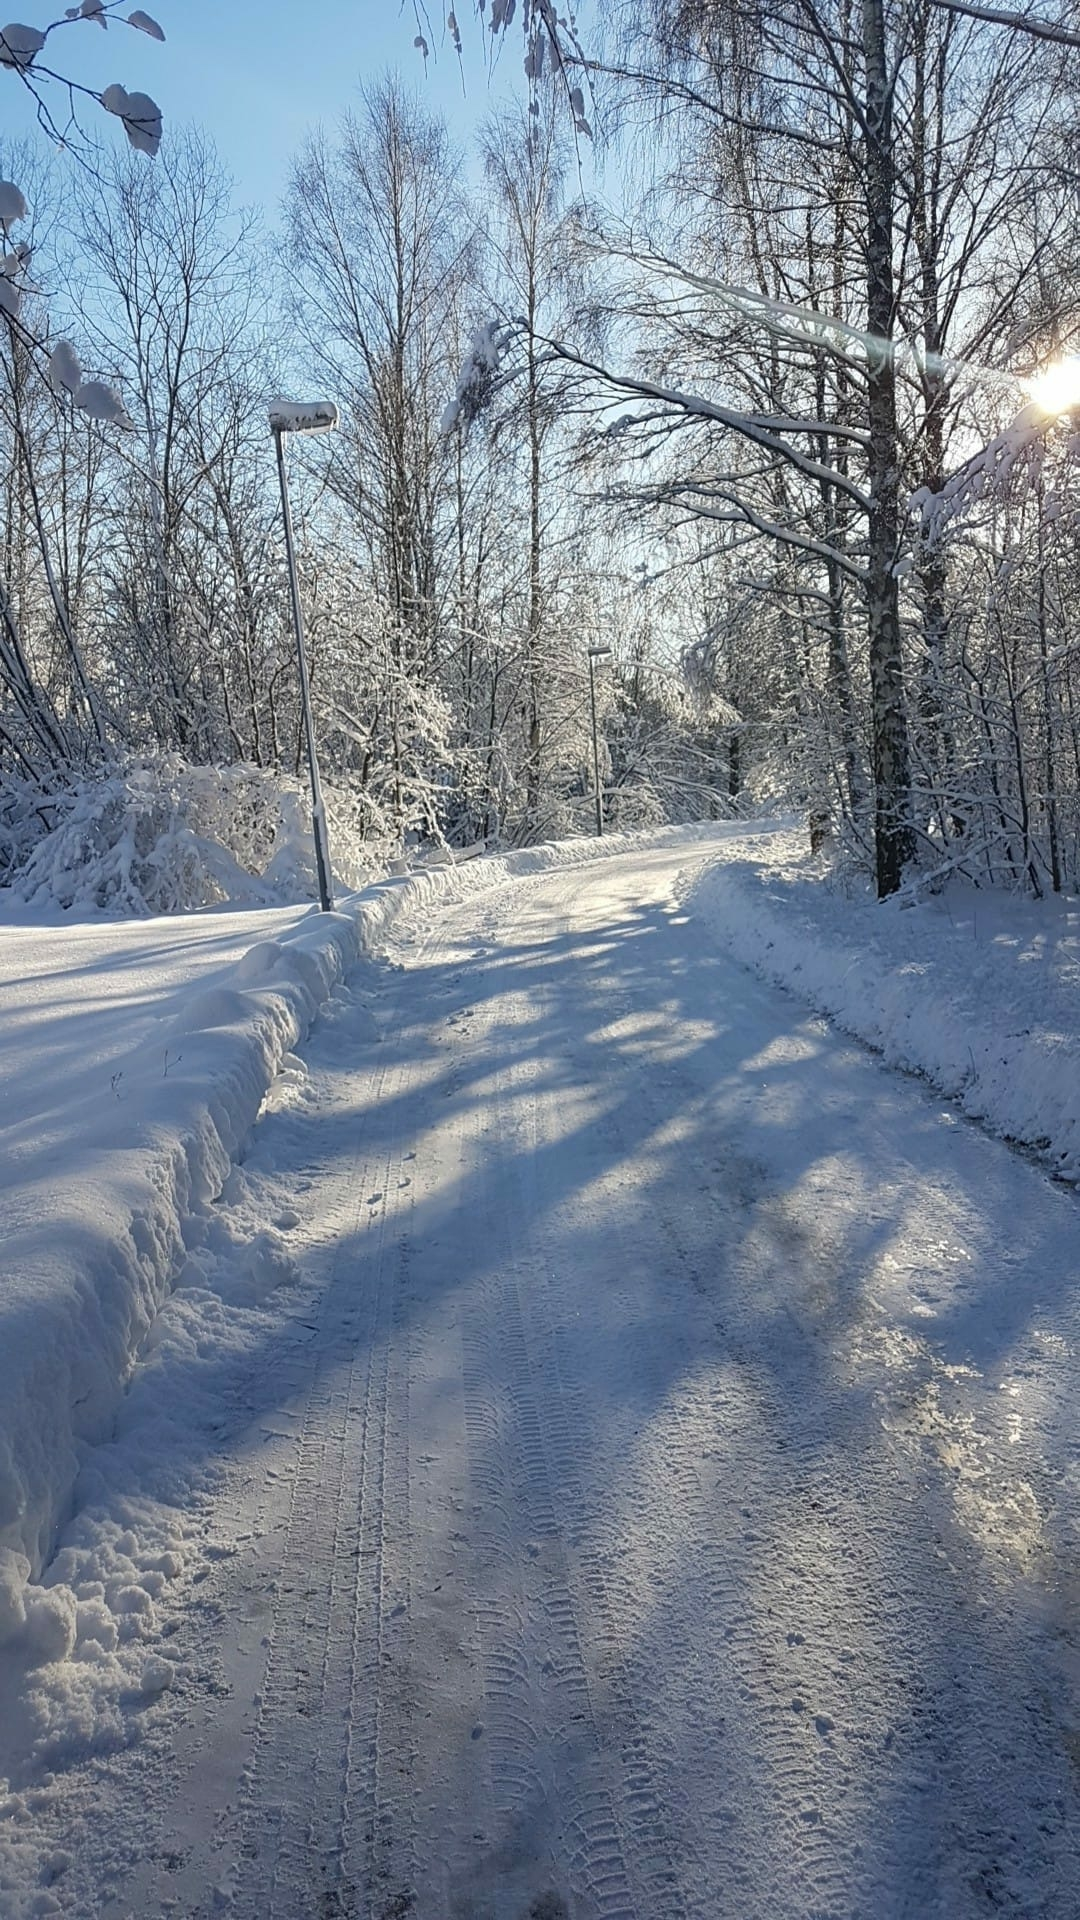 Snowy Winter Road With Clear Blue Sky and Snowy Trees